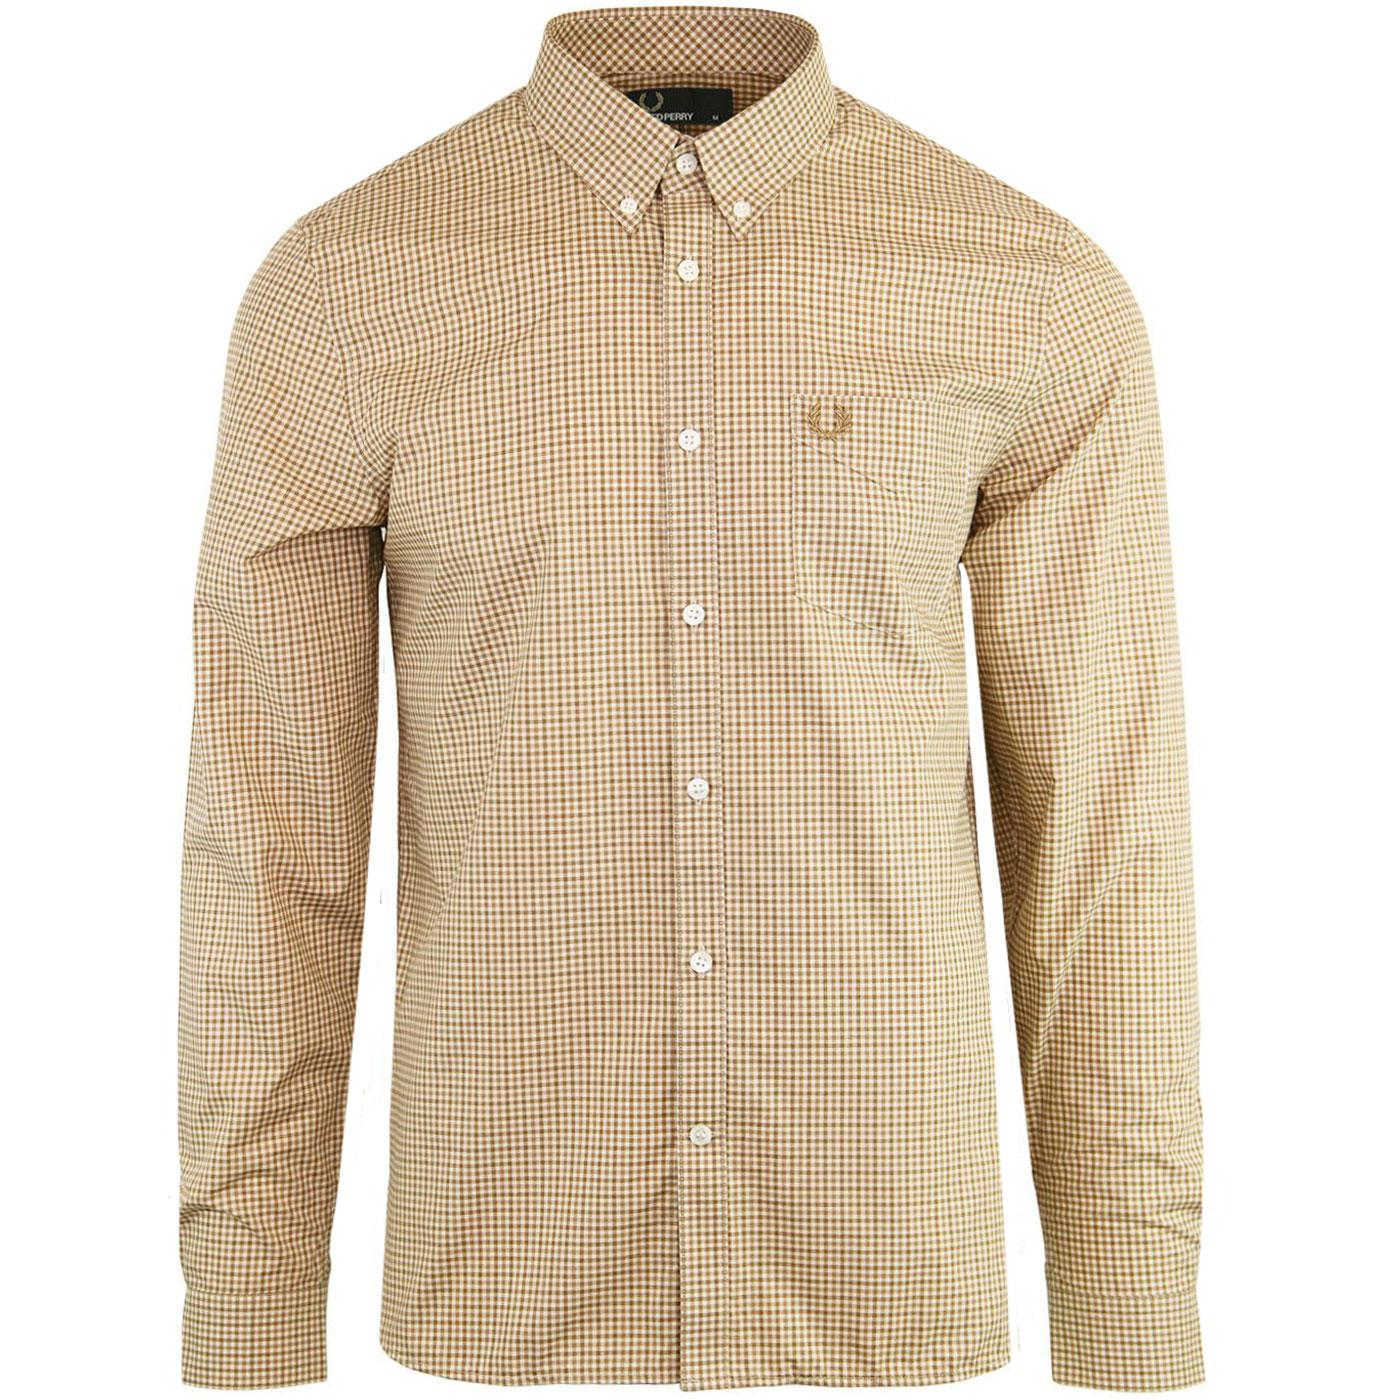 FRED PERRY Mens Mod Three Colour Gingham Shirt (C)